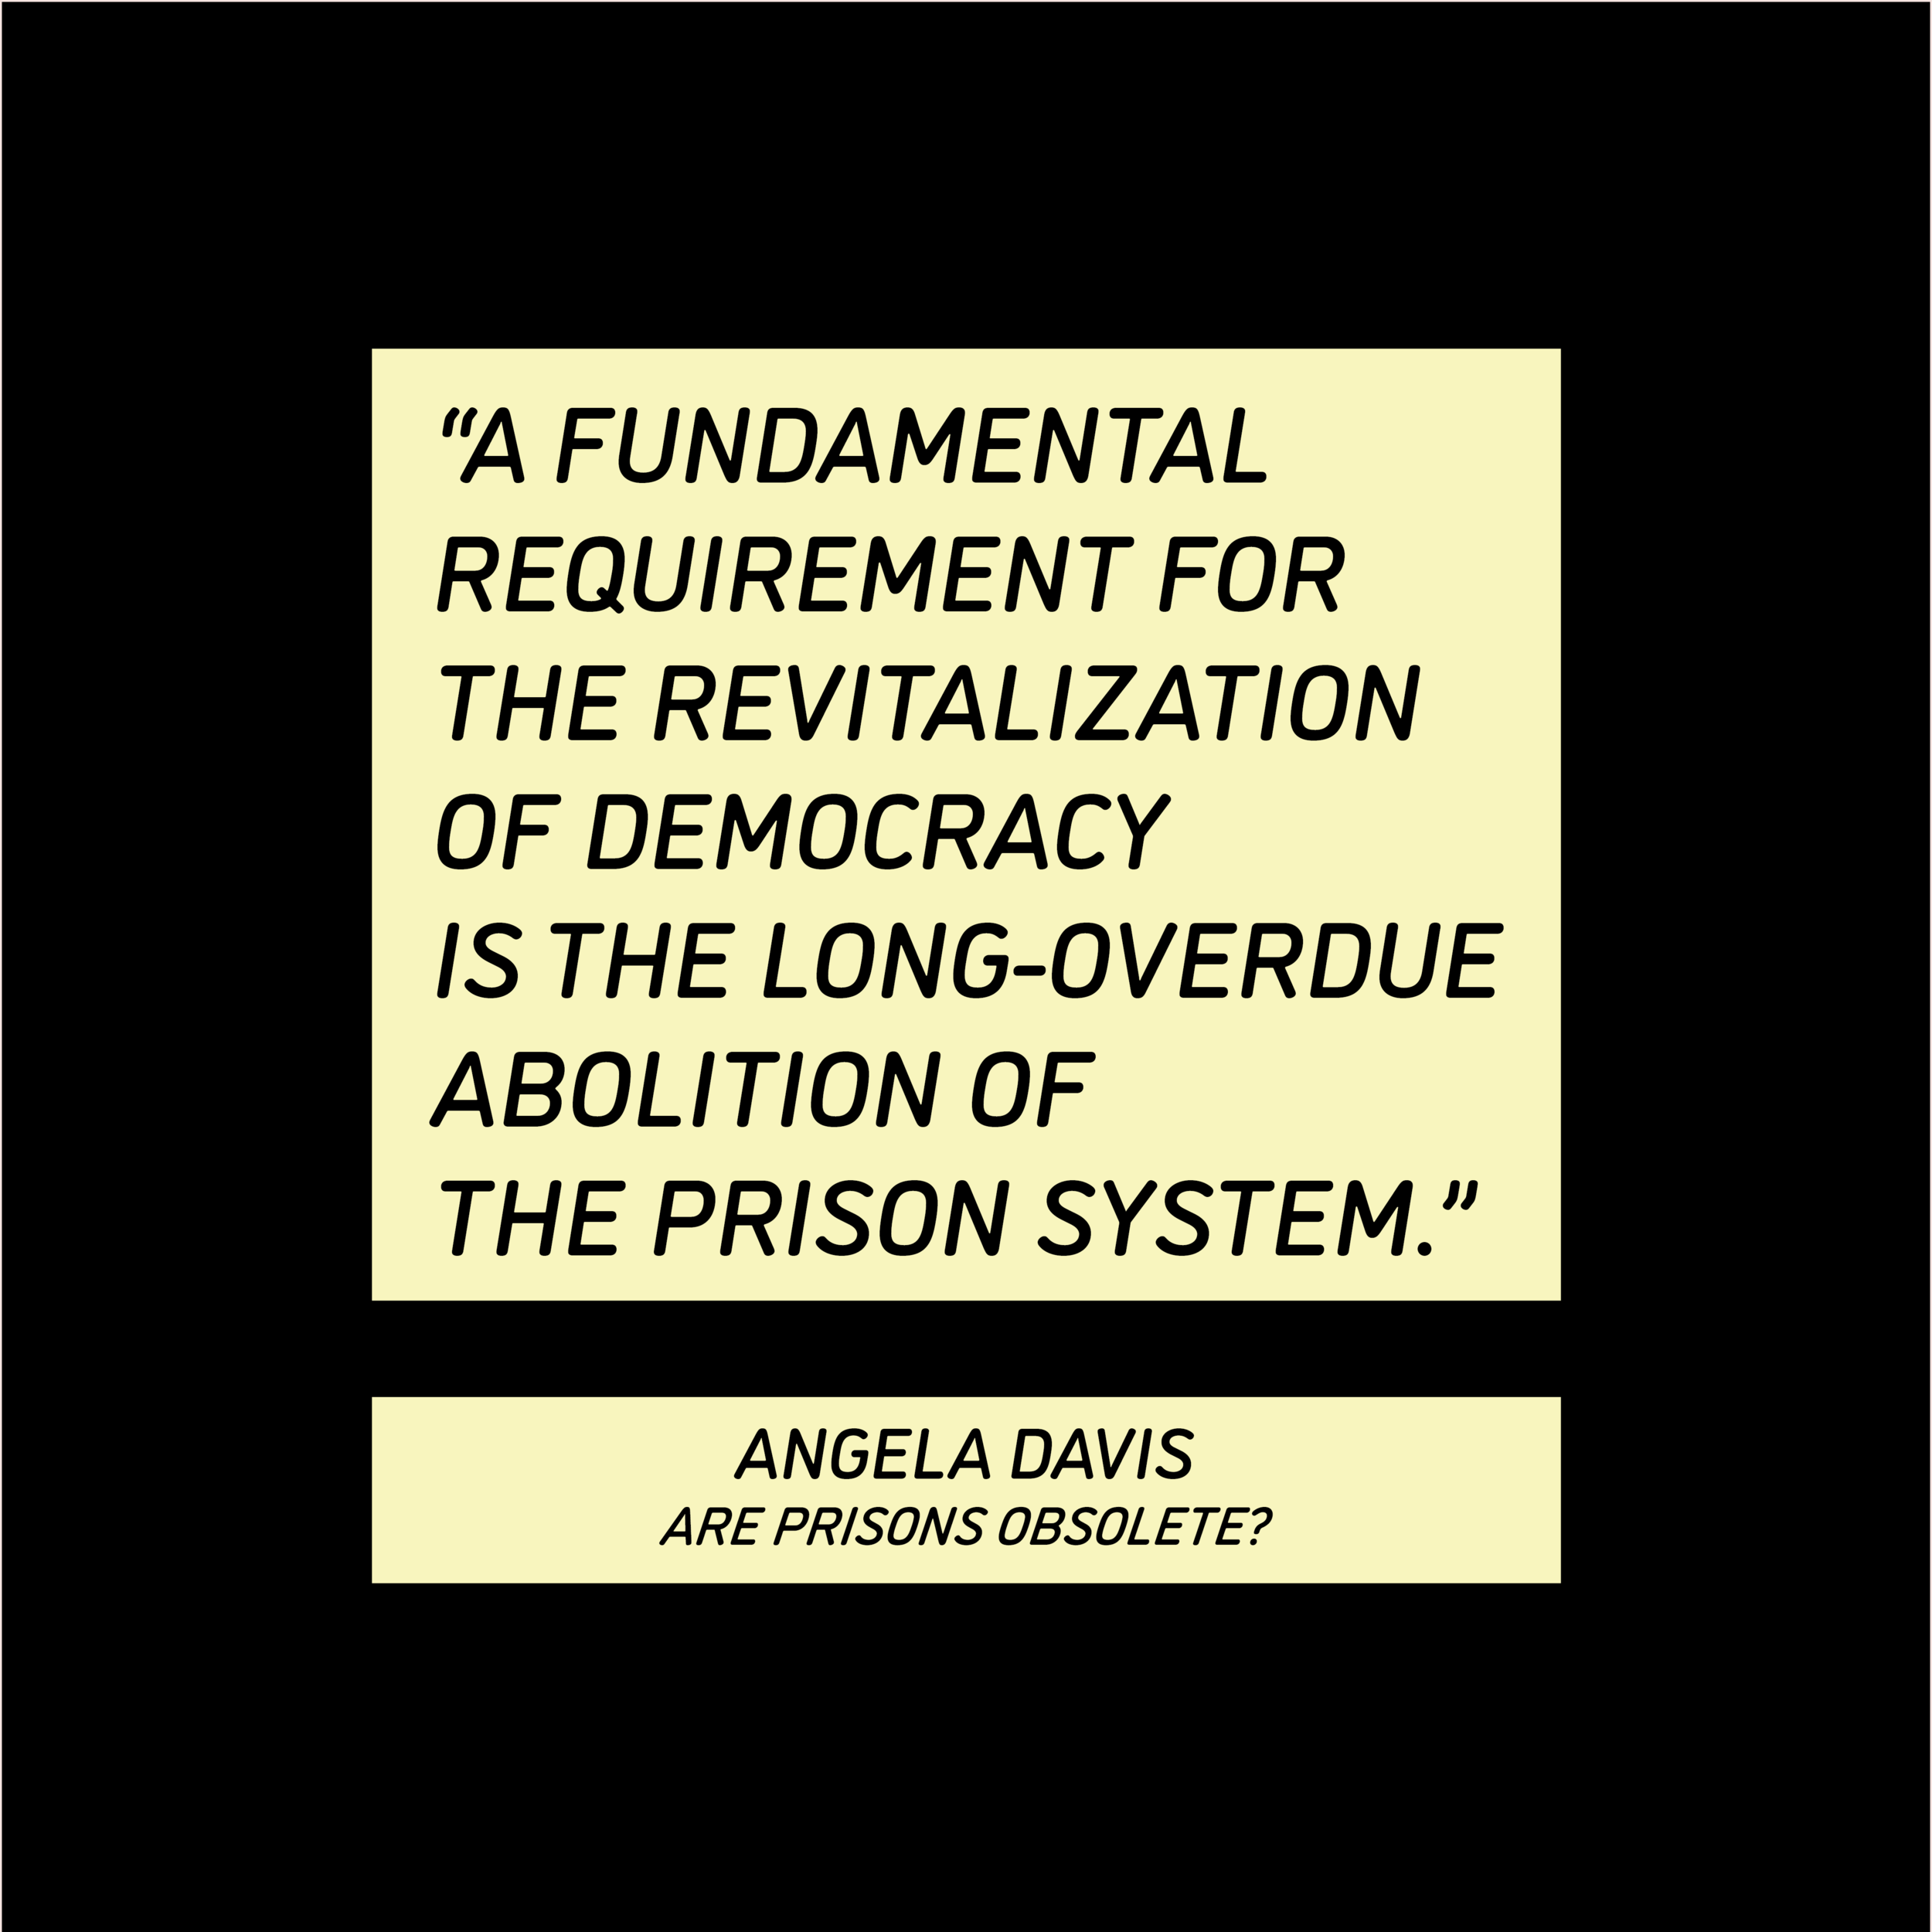 angela davis quote fixed.png